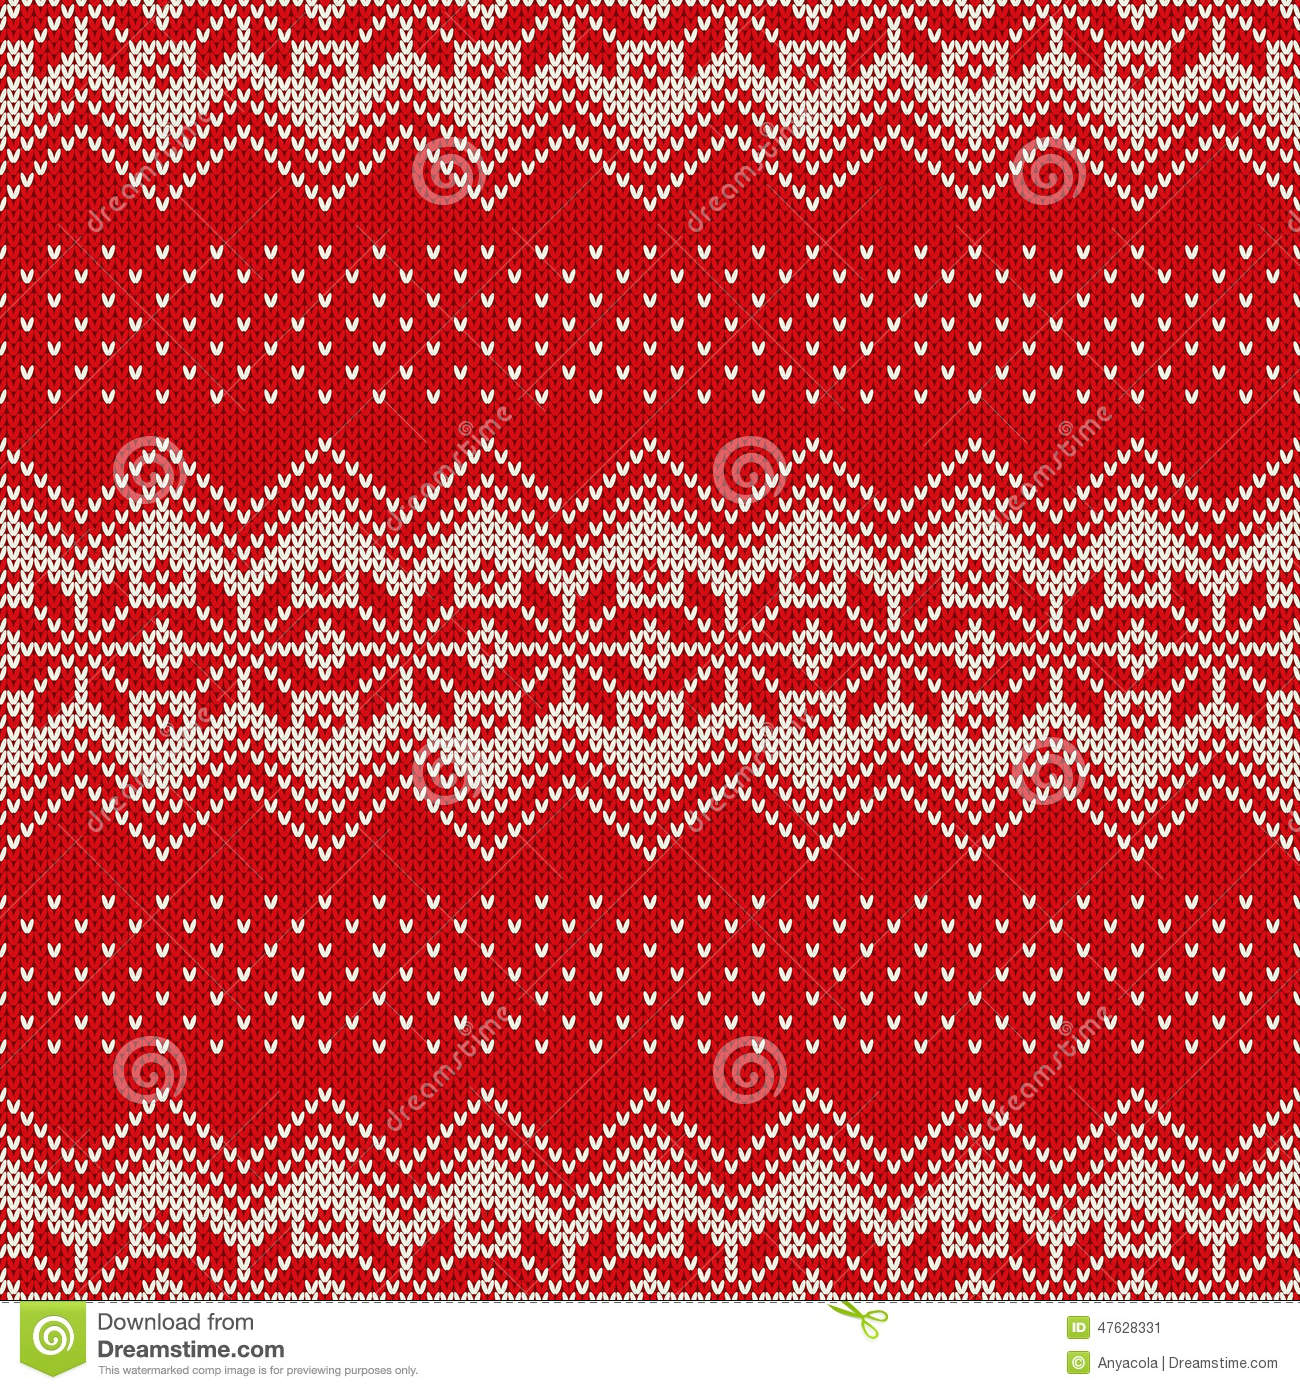 659d2b070621 Royalty-Free Vector. Christmas Sweater Design. Seamless Pattern